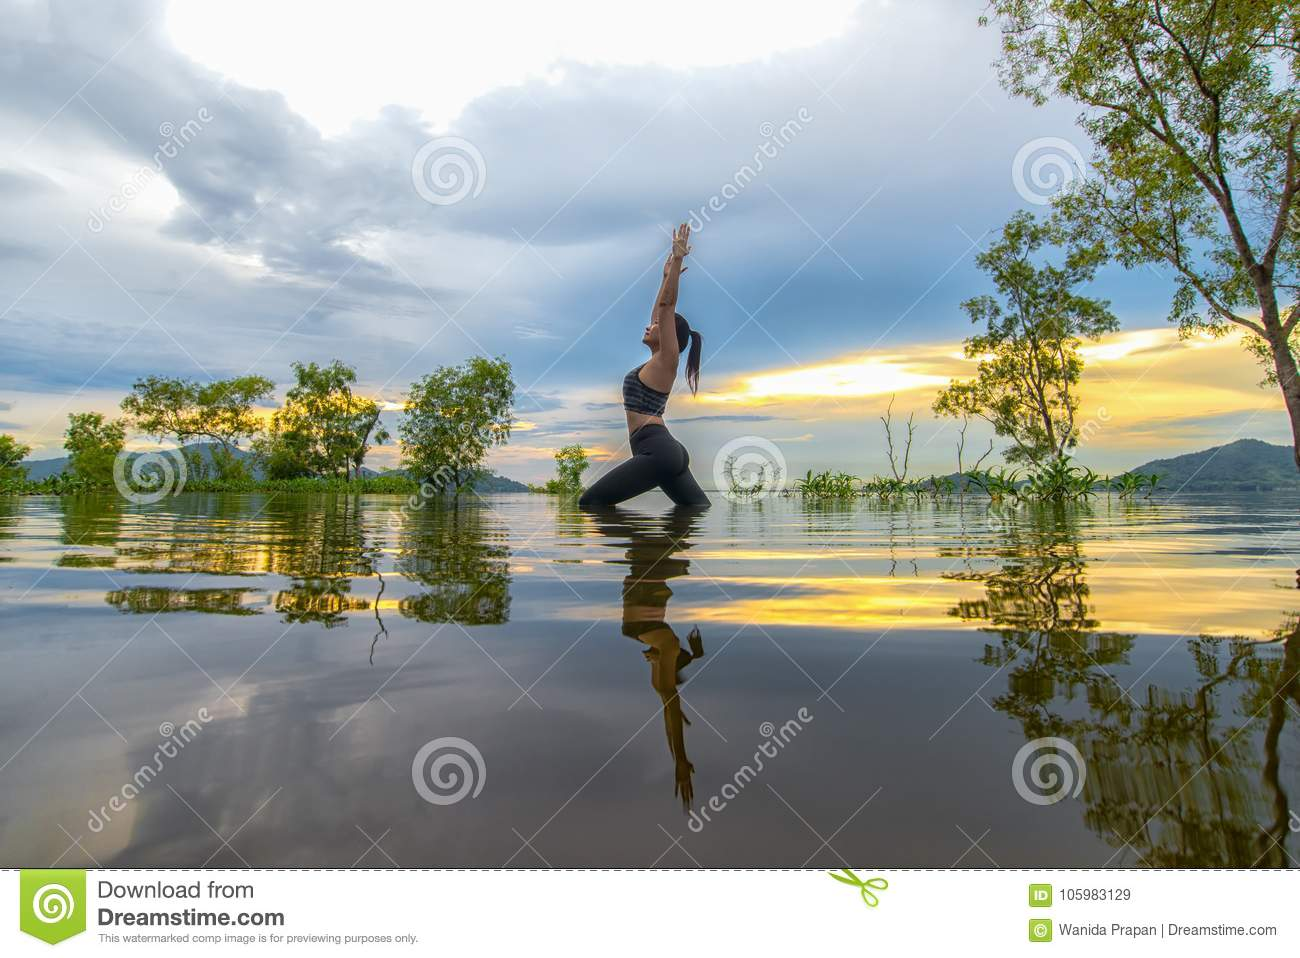 Silhouette young woman lifestyle exercising vital meditate and practicing reflect on water Flood the tree in the reservoir, backgr